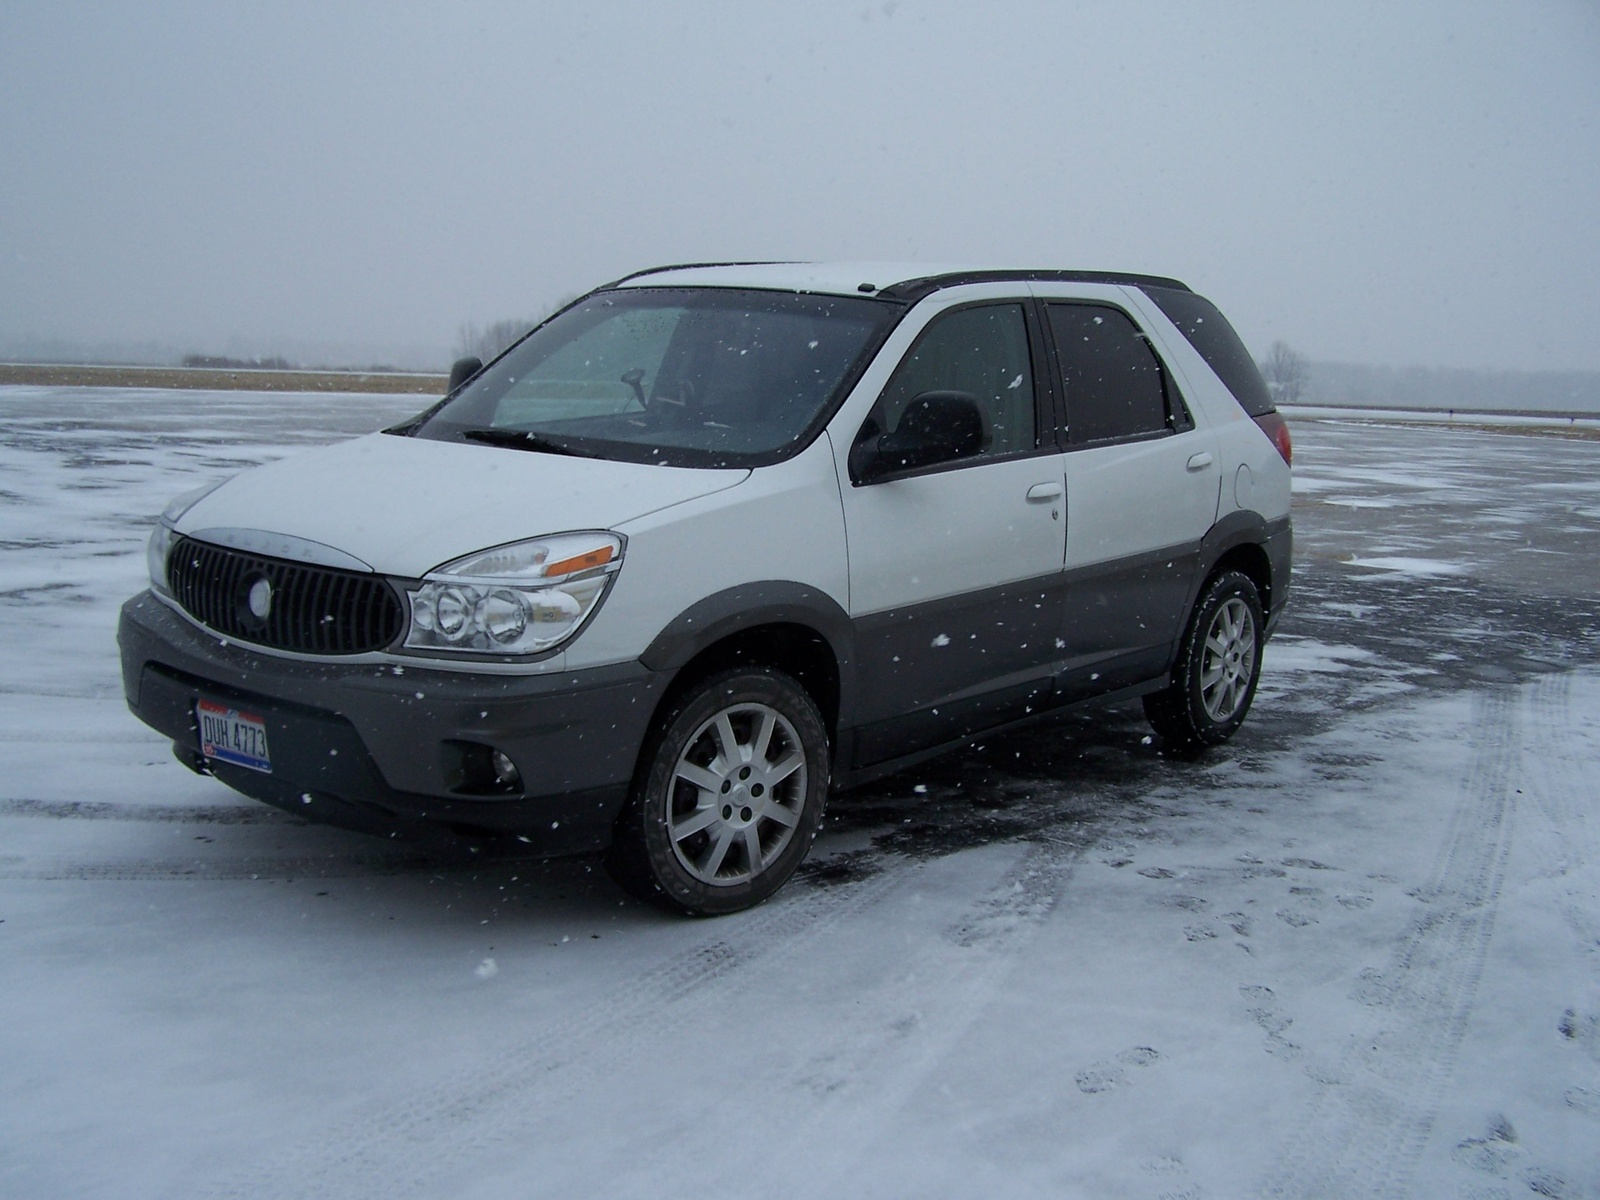 2003 Buick Rendezvous CX AWD picture